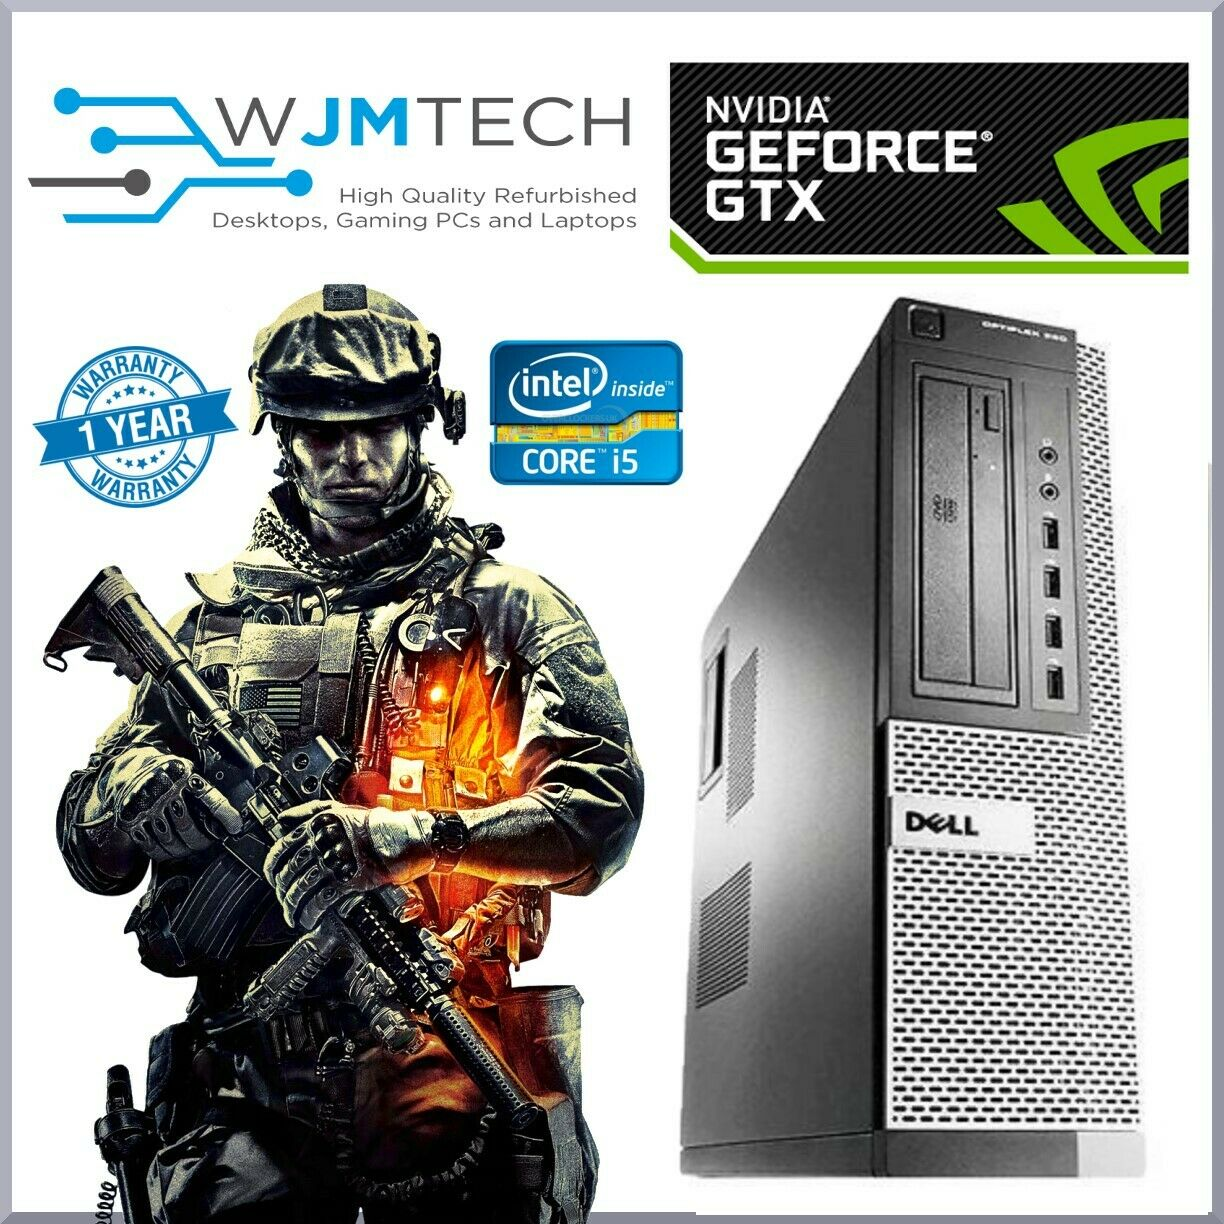 Computer Games - Dell Desktop Gaming PC Core i5 Computer 16GB RAM 480GB SSD Windows 10 Warranty